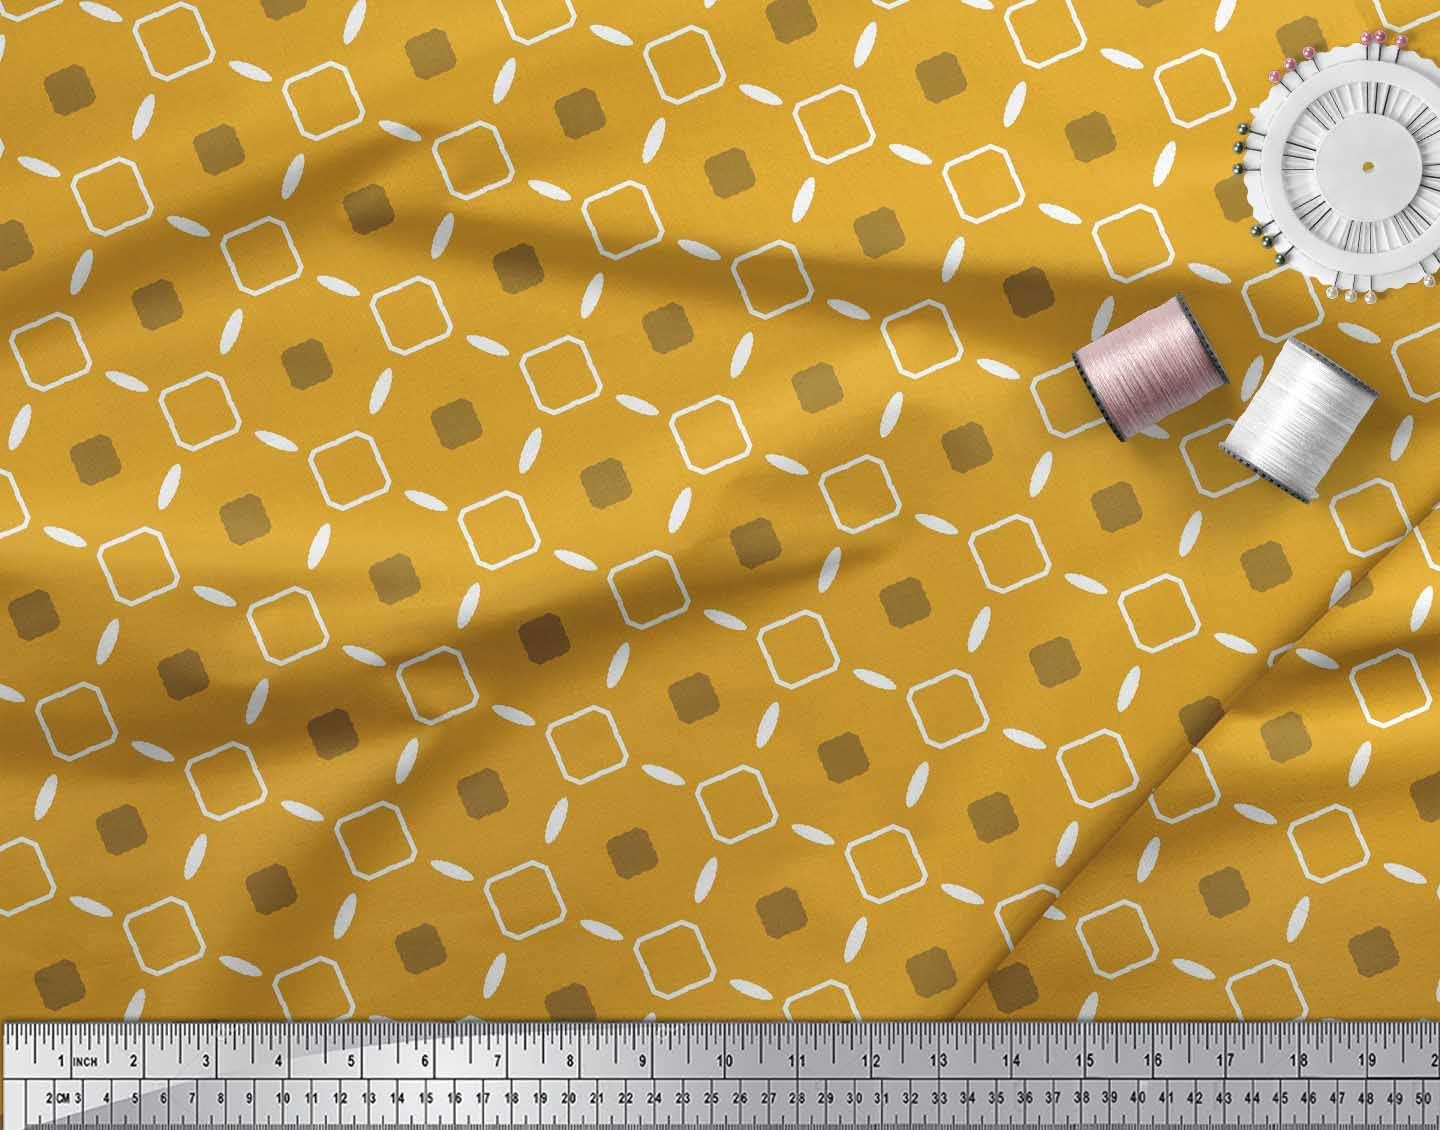 Soimoi-Gold-Cotton-Poplin-Fabric-Diamond-Geometric-Print-Fabric-aZU thumbnail 4